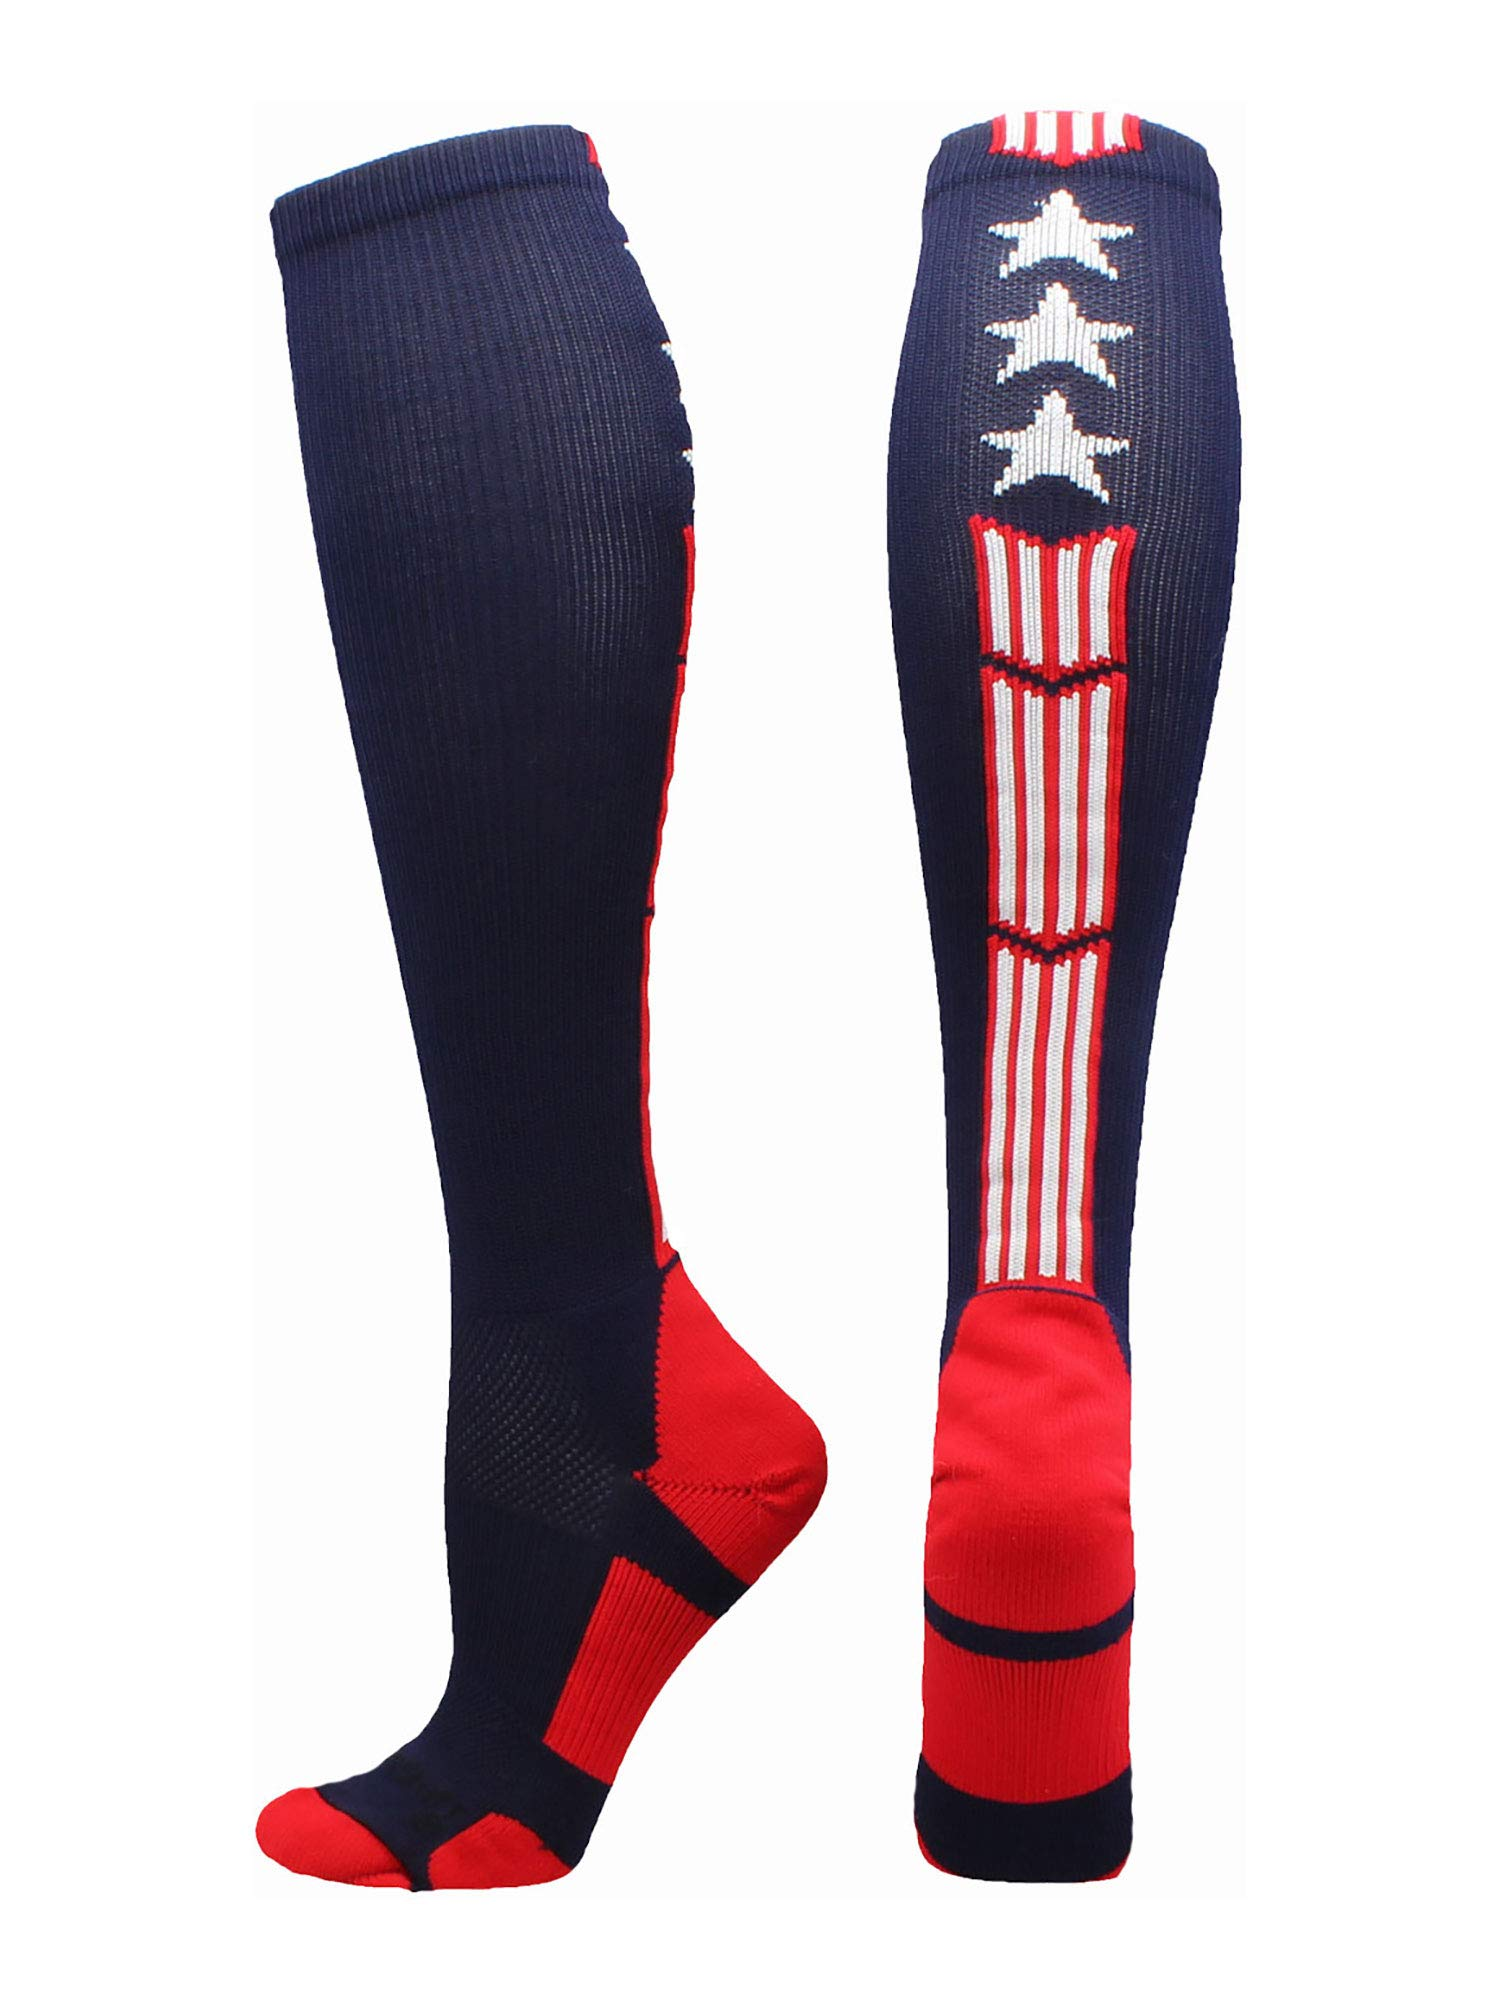 MadSportsStuff Patriot Stars and Stripes USA Flag Over The Calf Socks (Navy/Red/White 2.0, Large) by MadSportsStuff